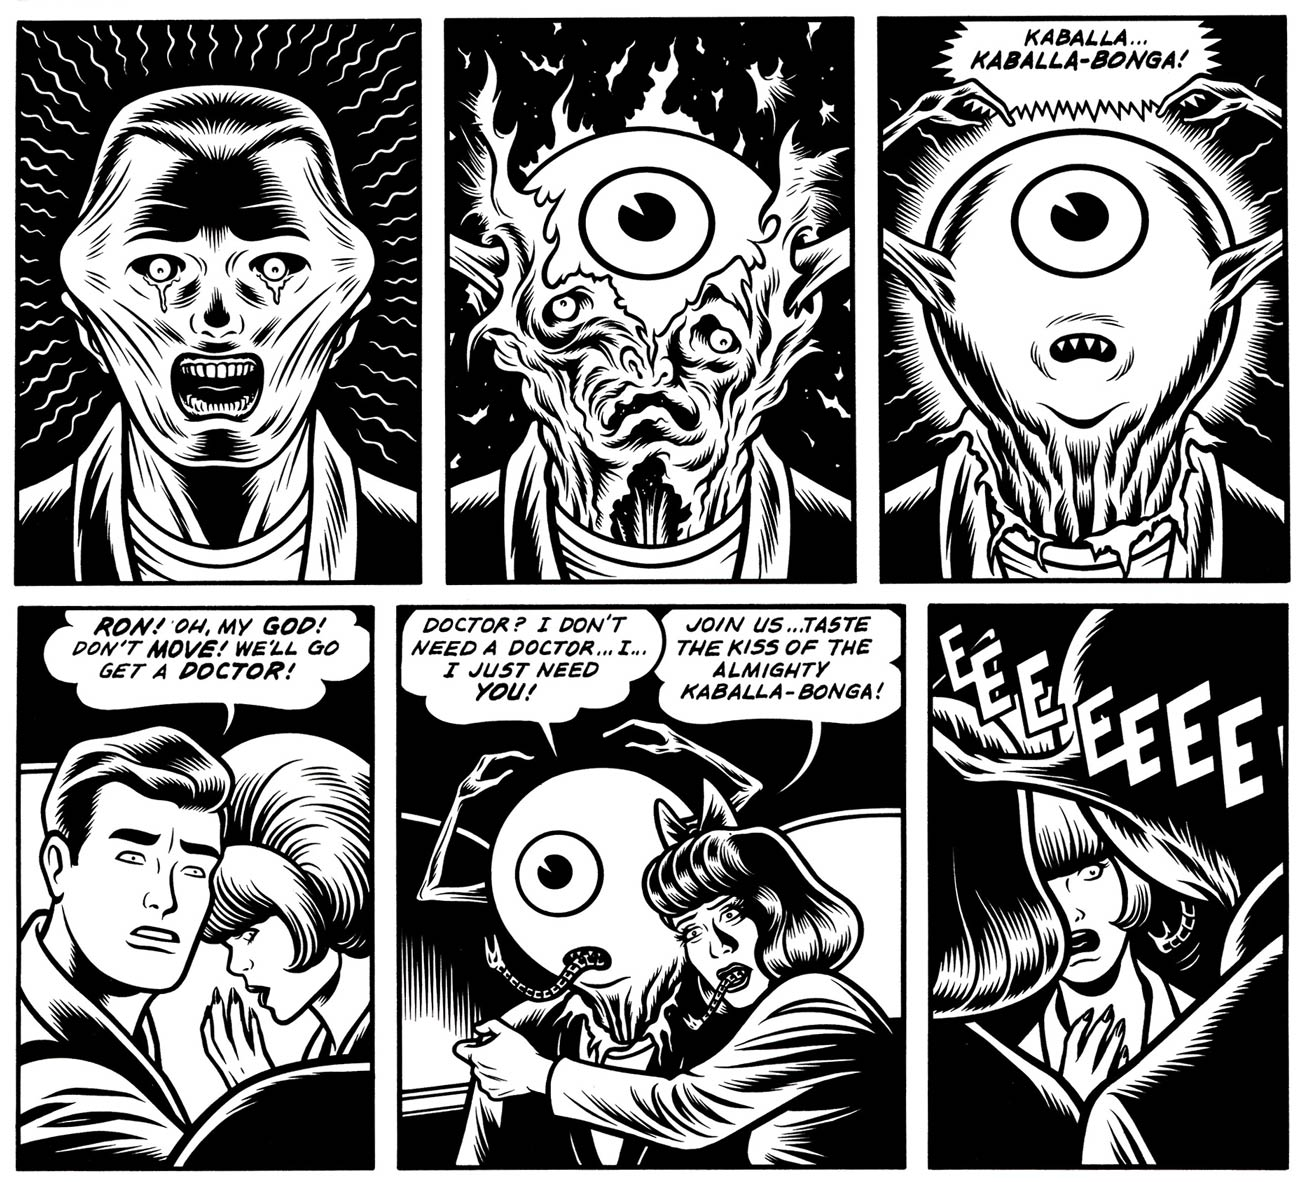 Charles Burns | Lambiek Comiclopedia